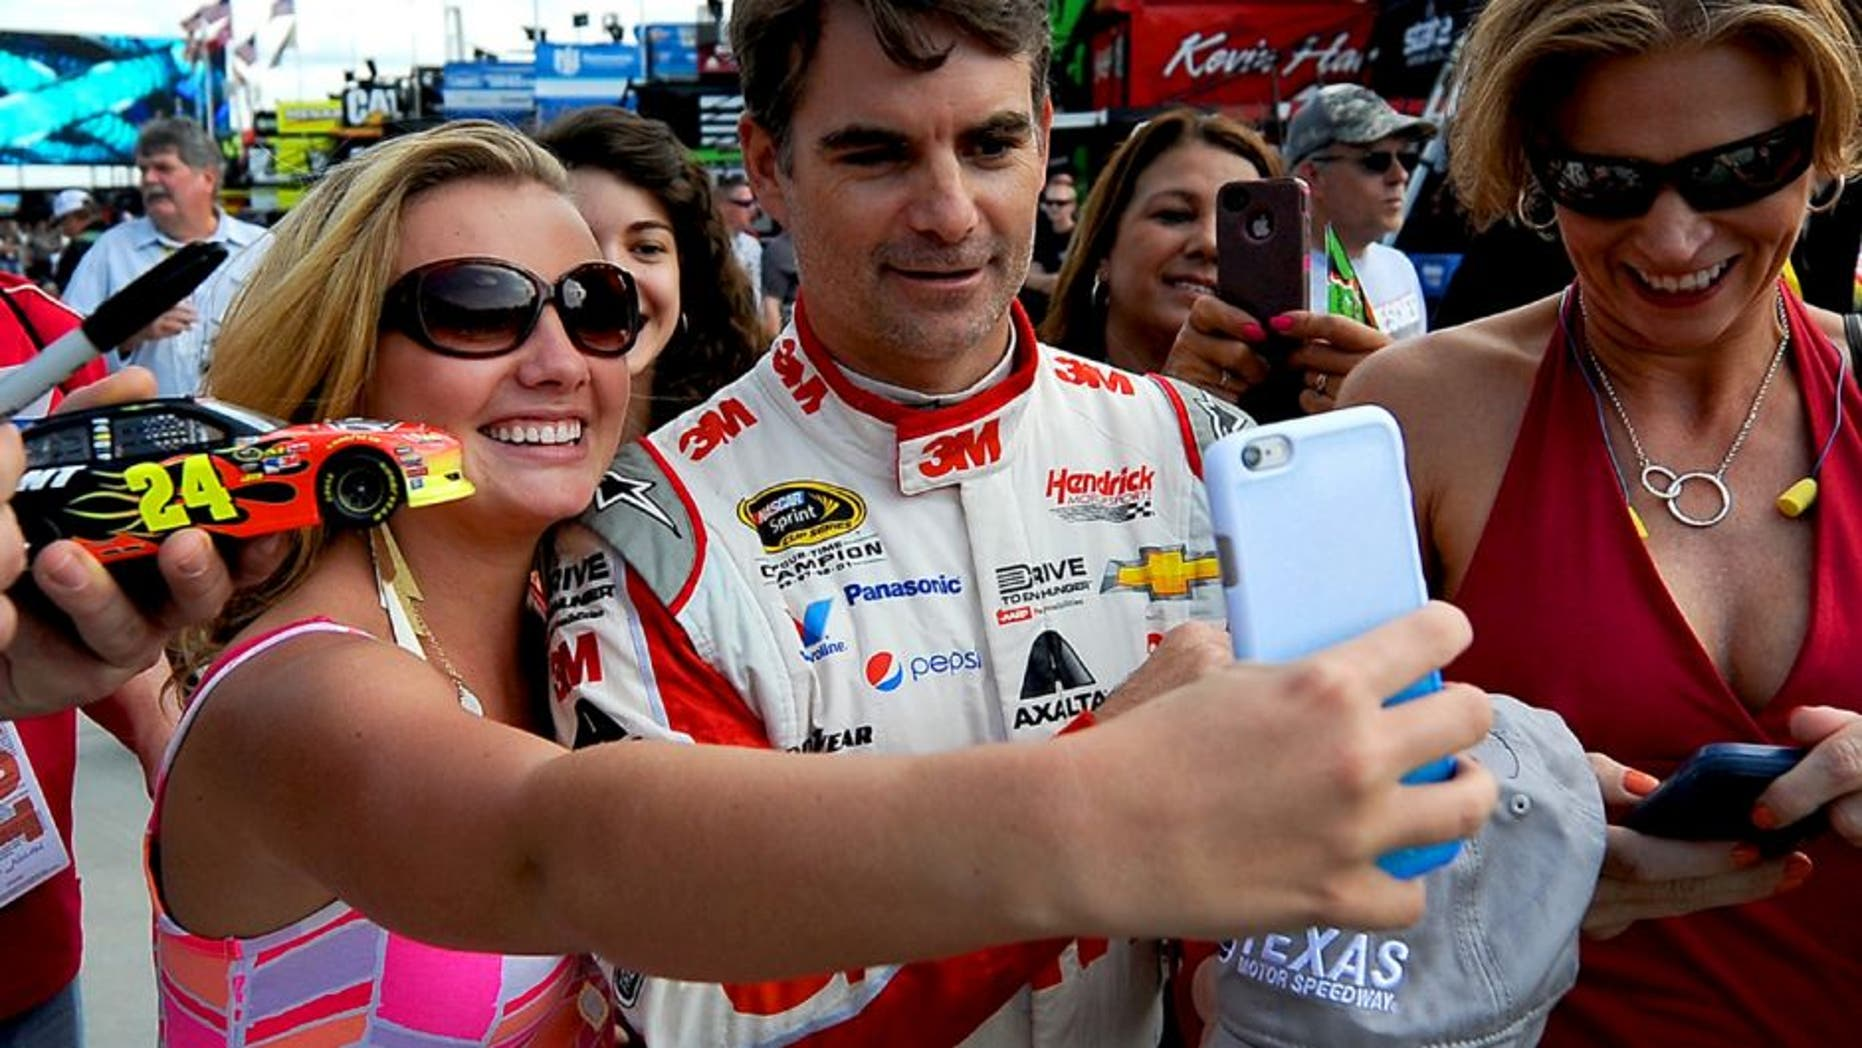 NASCAR fan Savannah Dean, left, of Akron, Ohio, smiles as she takes a selfie with NASCAR Sprint Cup Series driver Jeff Gordon, right, as he walks to his car at at Charlotte Motor Speedway in Concord, N.C., on Friday, Oct. 9, 2015. Saturday's Bank of America 500 will be Gordon's final start in a Cup Series race at Charlotte Motor Speedway. (Jeff Siner/Charlotte Observer/TNS via Getty Images)